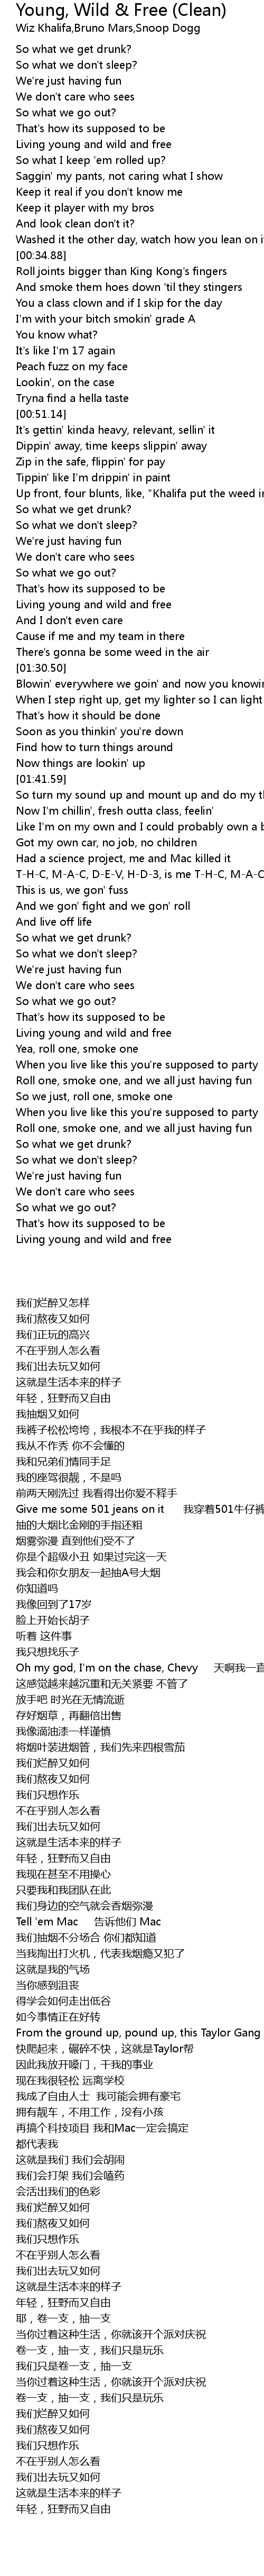 young wild and free lyrics clean